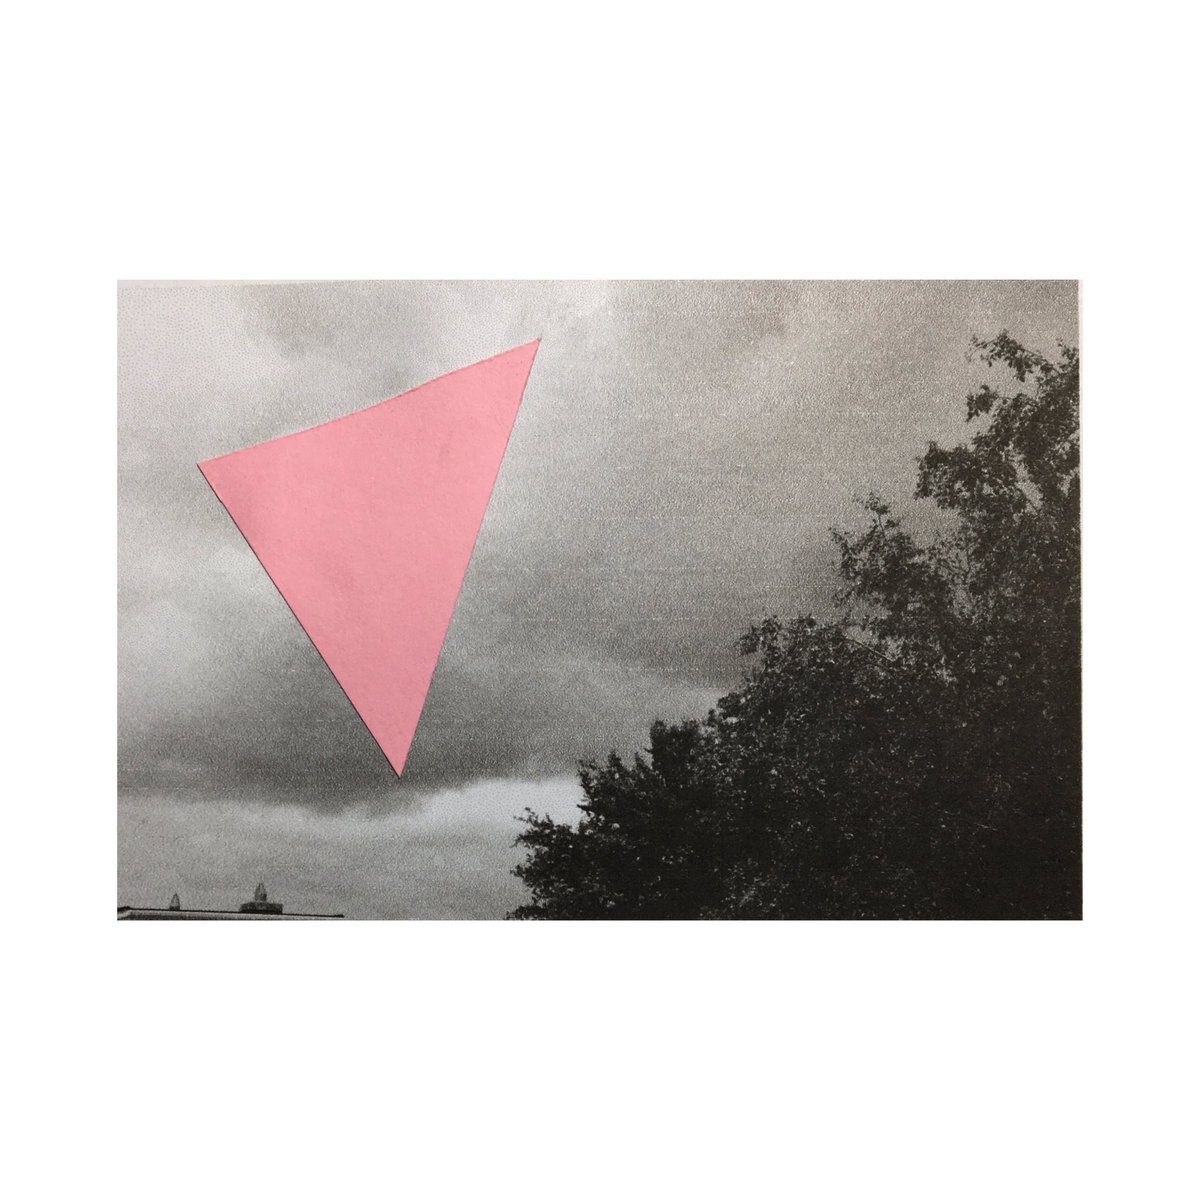 I tore a hole through the sky, collage on digital print, 2021  #print #collage #pink #landscape